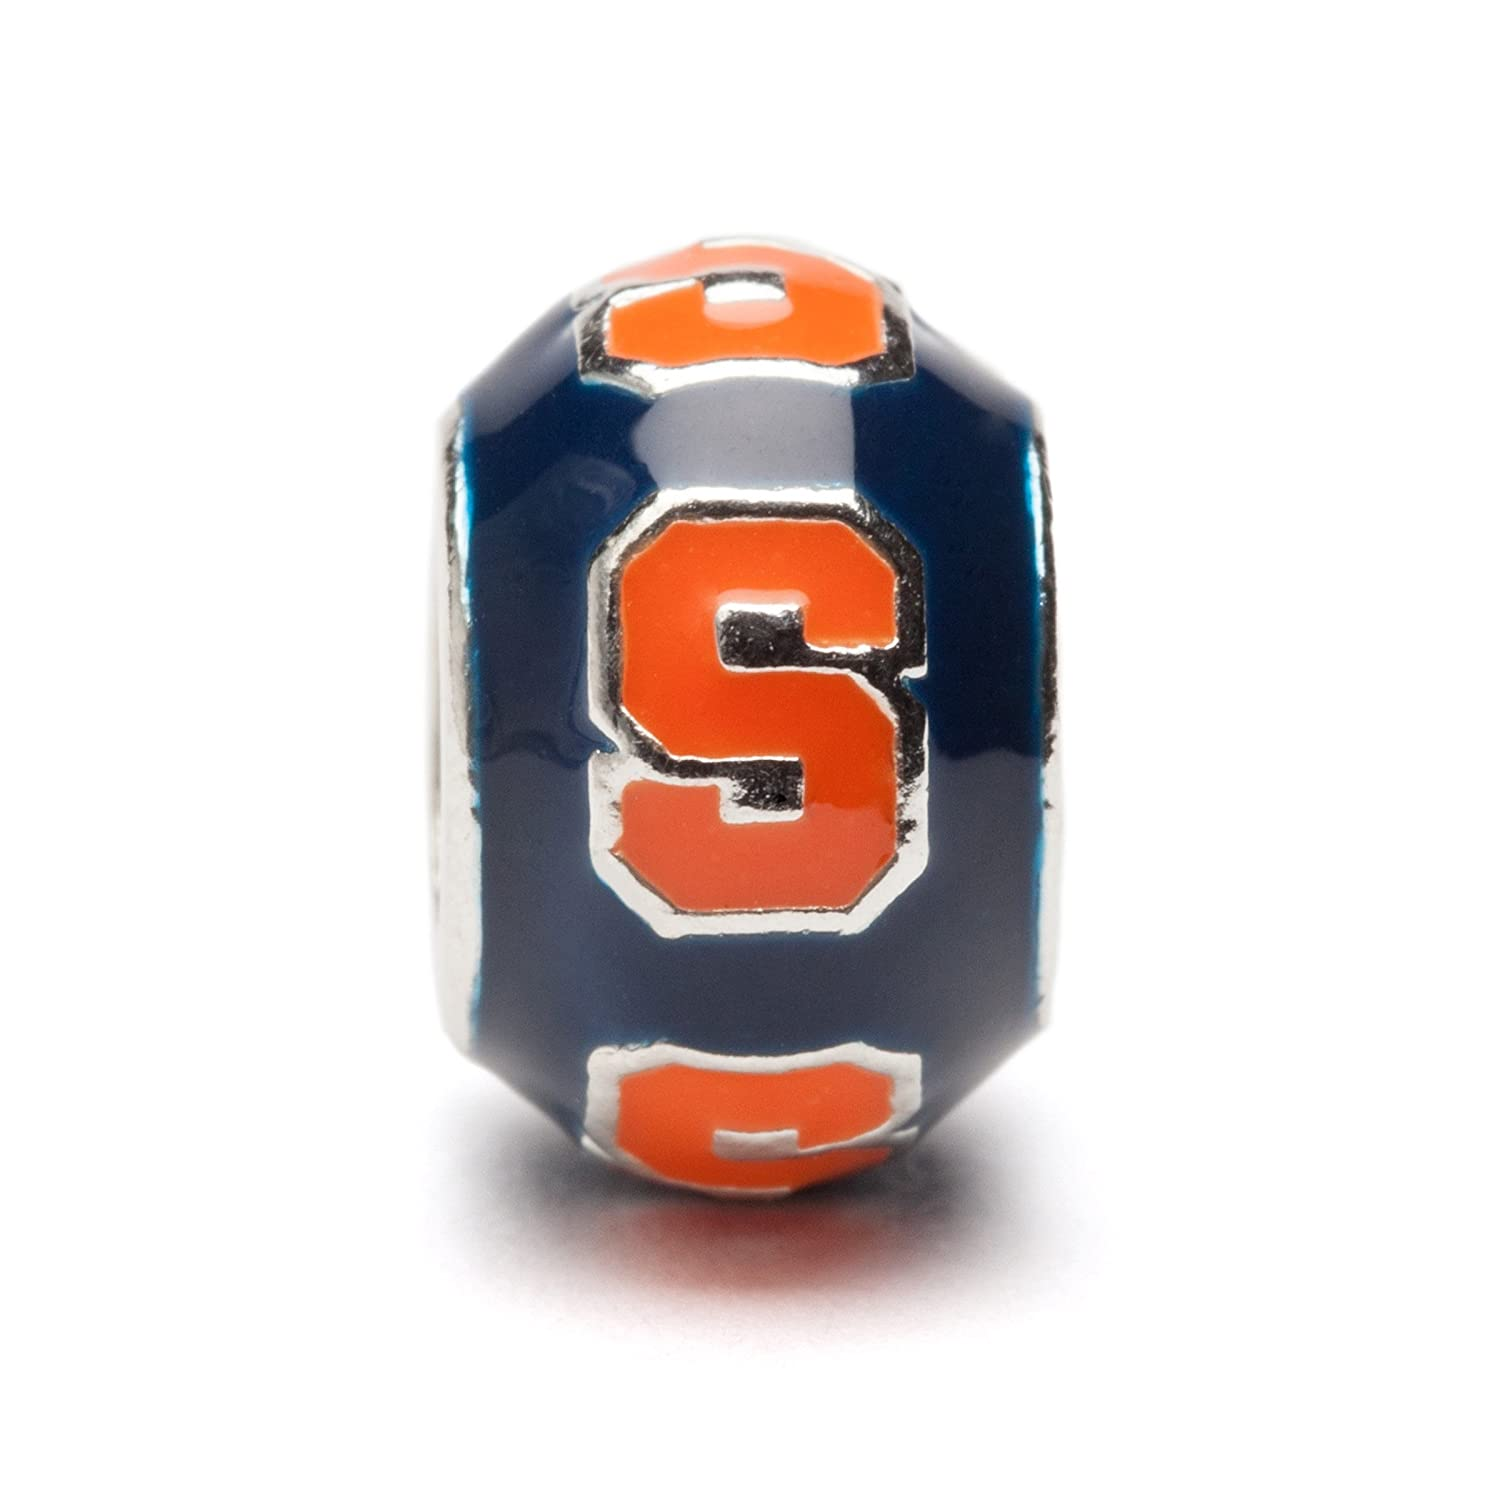 SU Charms Syracuse University Charm Stainless Steel Syracuse Oranges Gifts Syracuse Charms Officially Licensed Syracuse University Jewelry Orange S on Round Blue Bead SU Oranges Charm